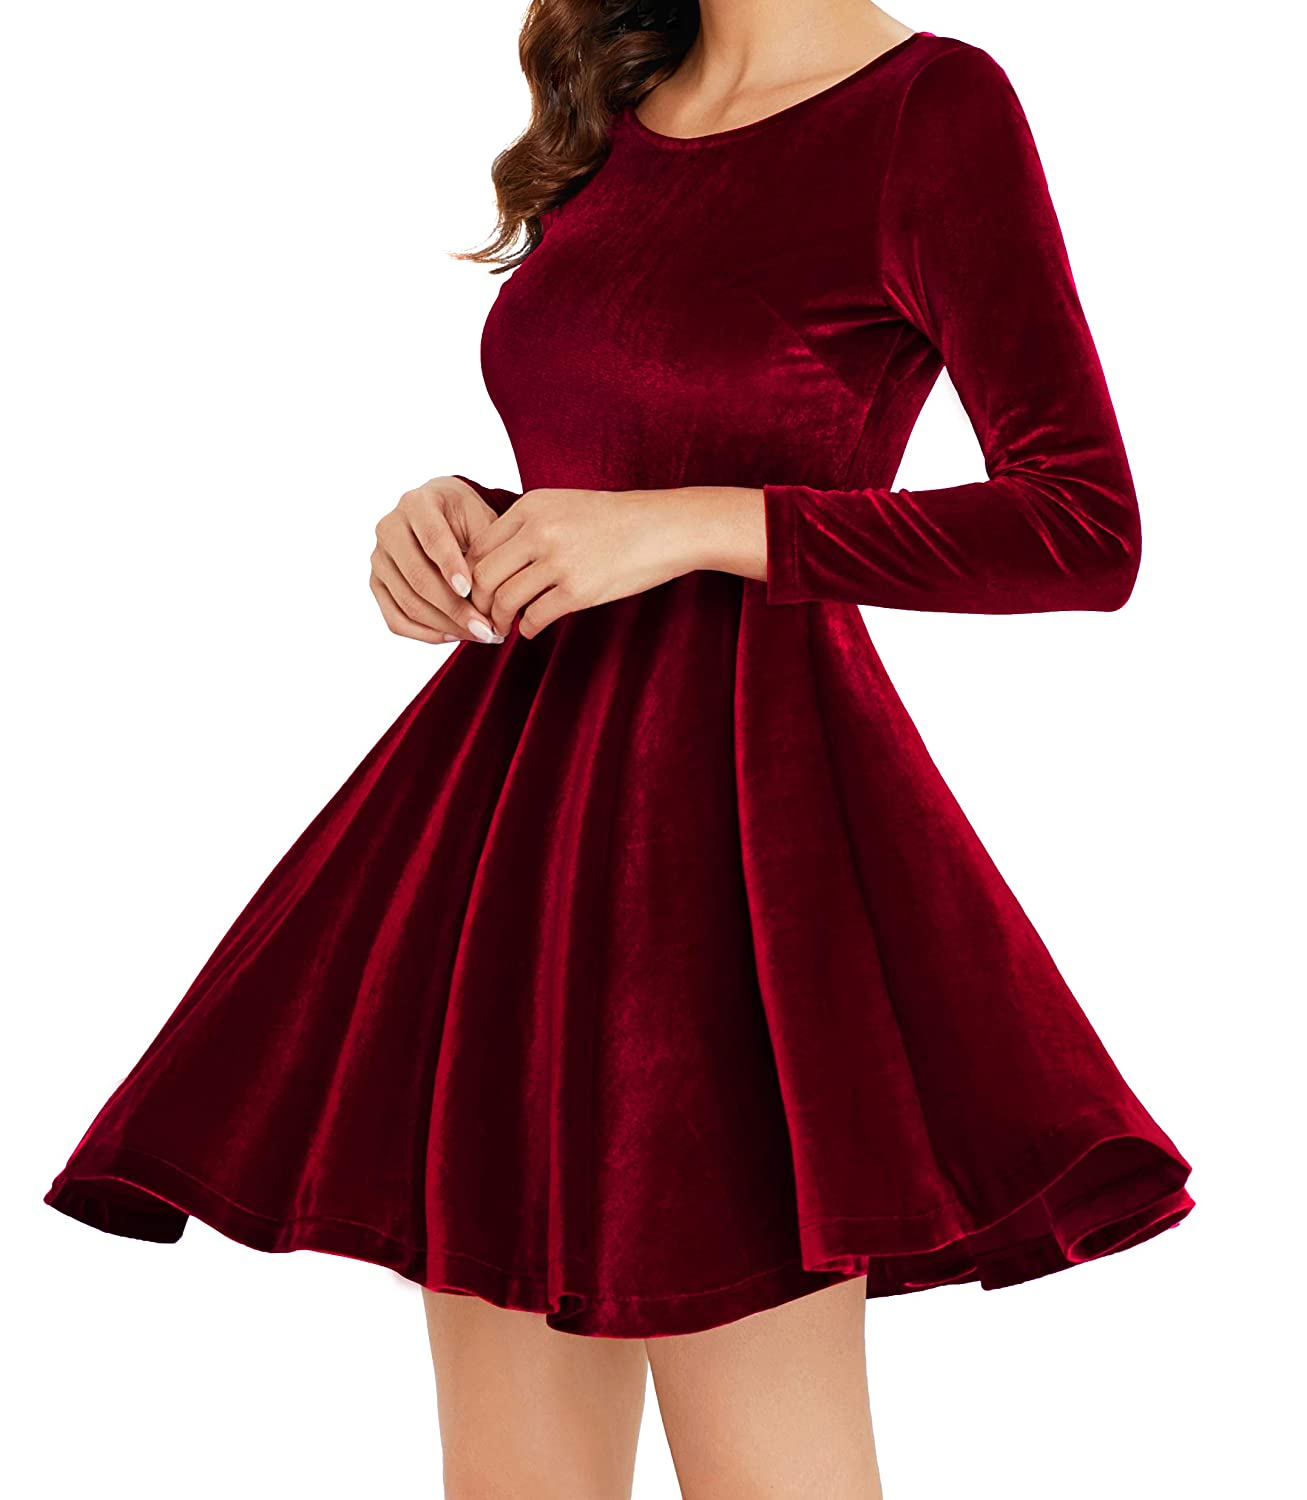 b19d12e4427 Annigo Women s Red Velvet Mini Fit and Flared Cocktail Dresses with  Sleeve